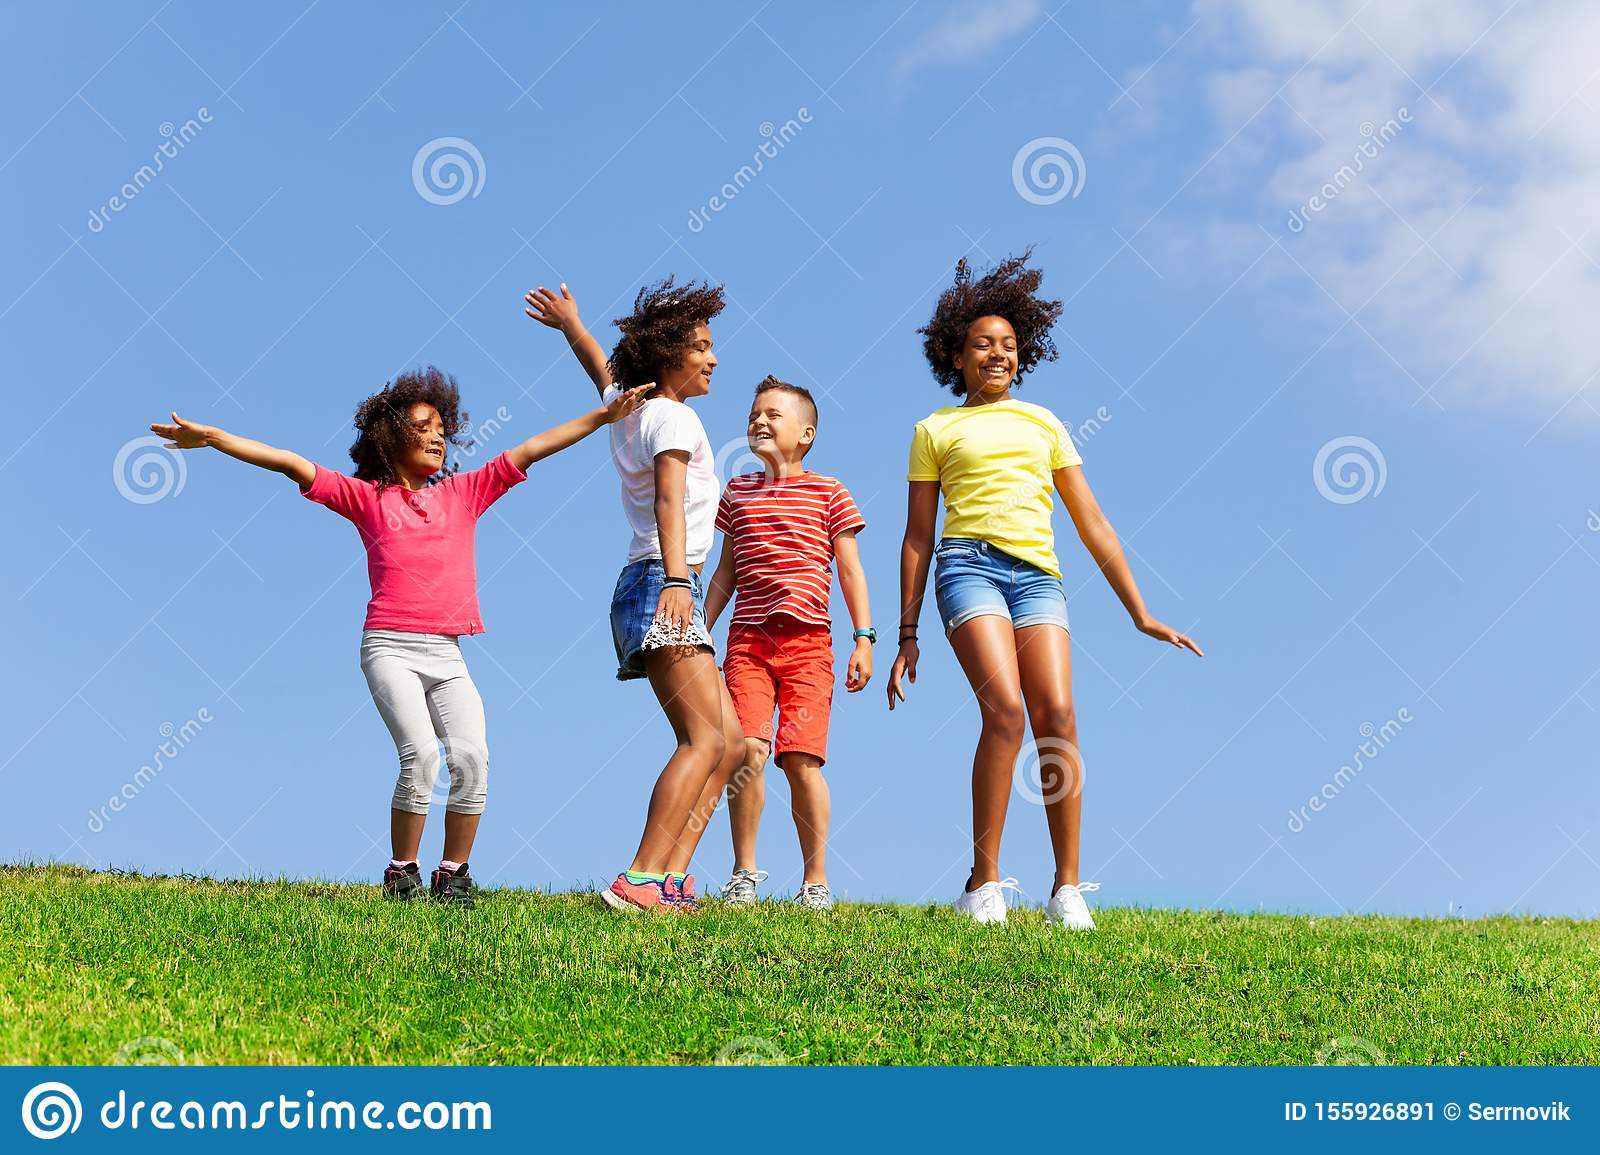 Group of happy dancing and jumping children